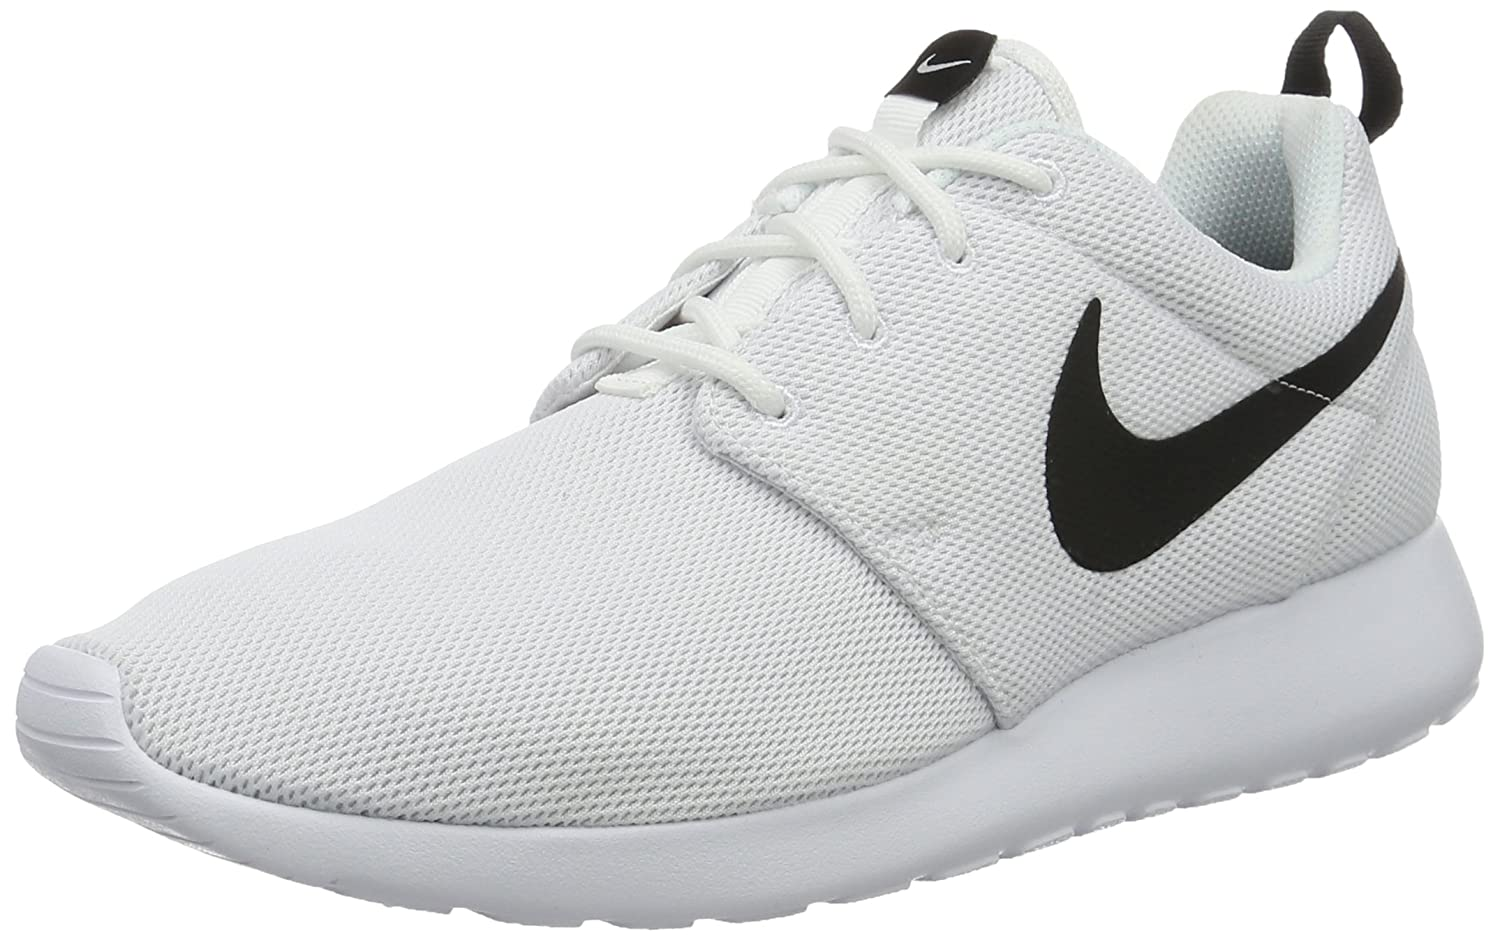 NIKE Women's Roshe One Running Shoe B002UJW0WK 8 B(M) US|White/White/Black